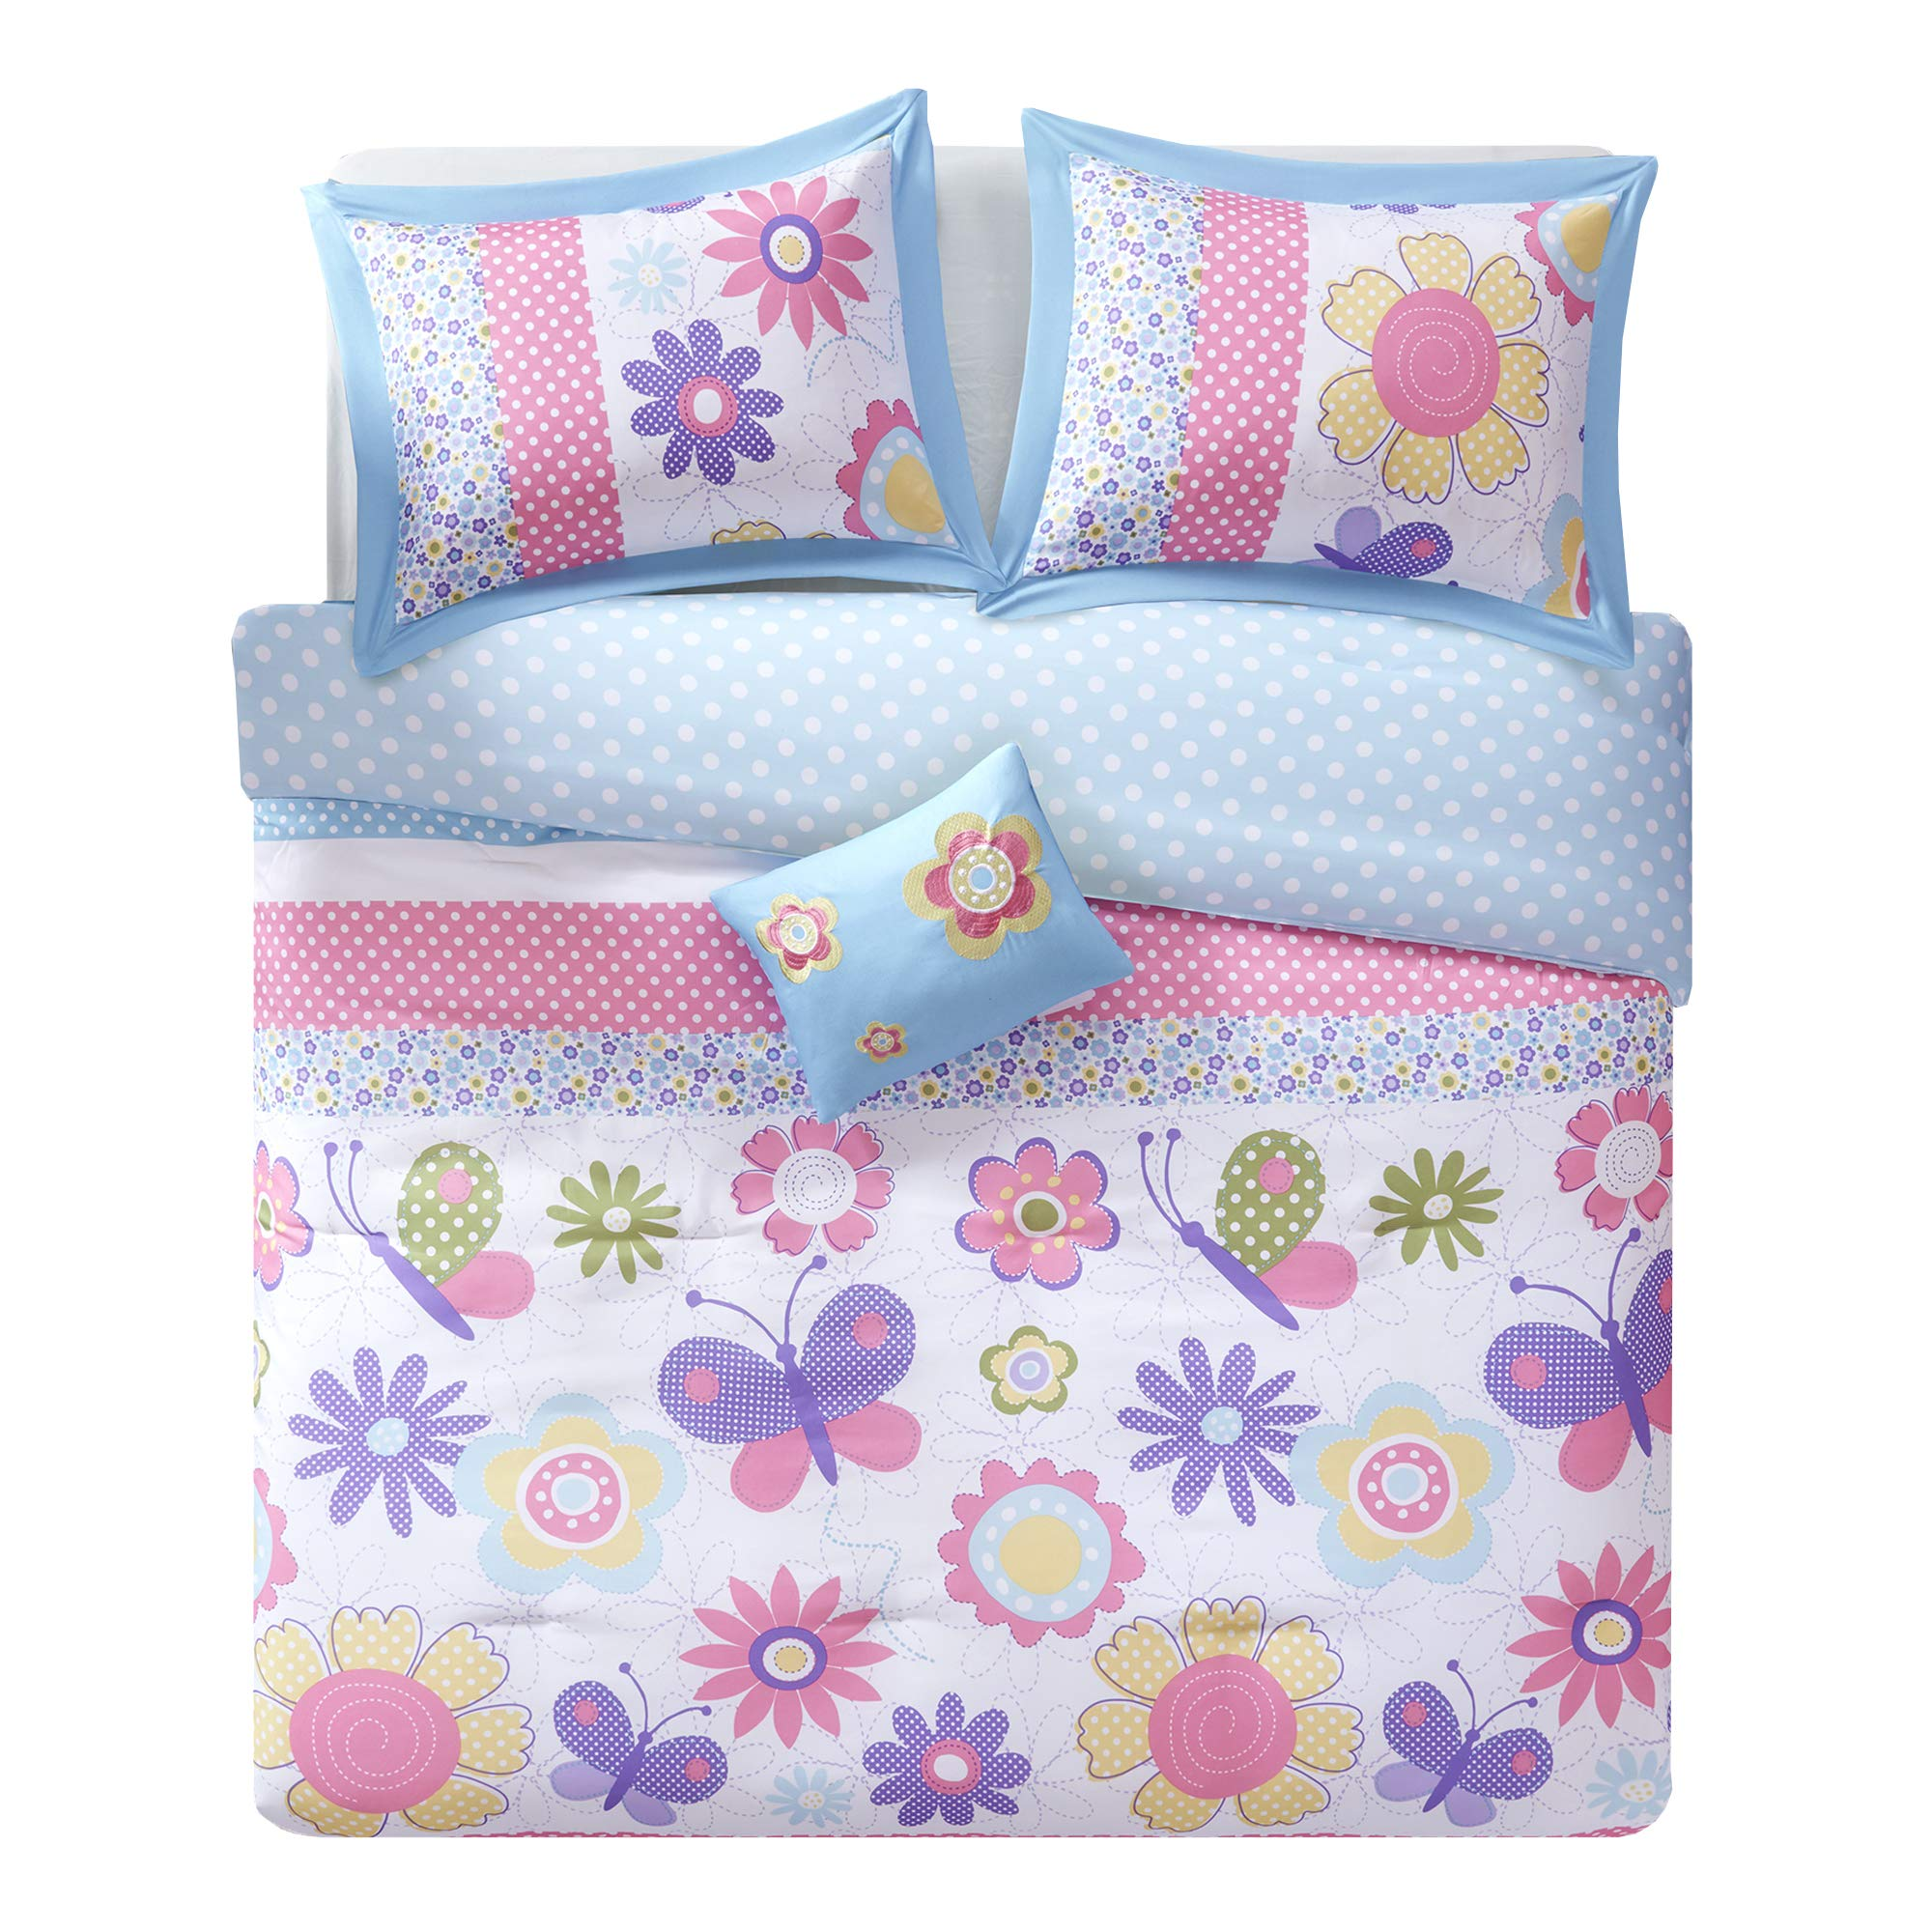 Comfort Spaces - Happy Daisy Kid Comforter Set - 3 Piece - Butterfly & Floral - Blue Pink - Twin/Twin XL Size, Includes 1 Comforter, 1 Sham, 1 Decorative Pillow by Comfort Spaces